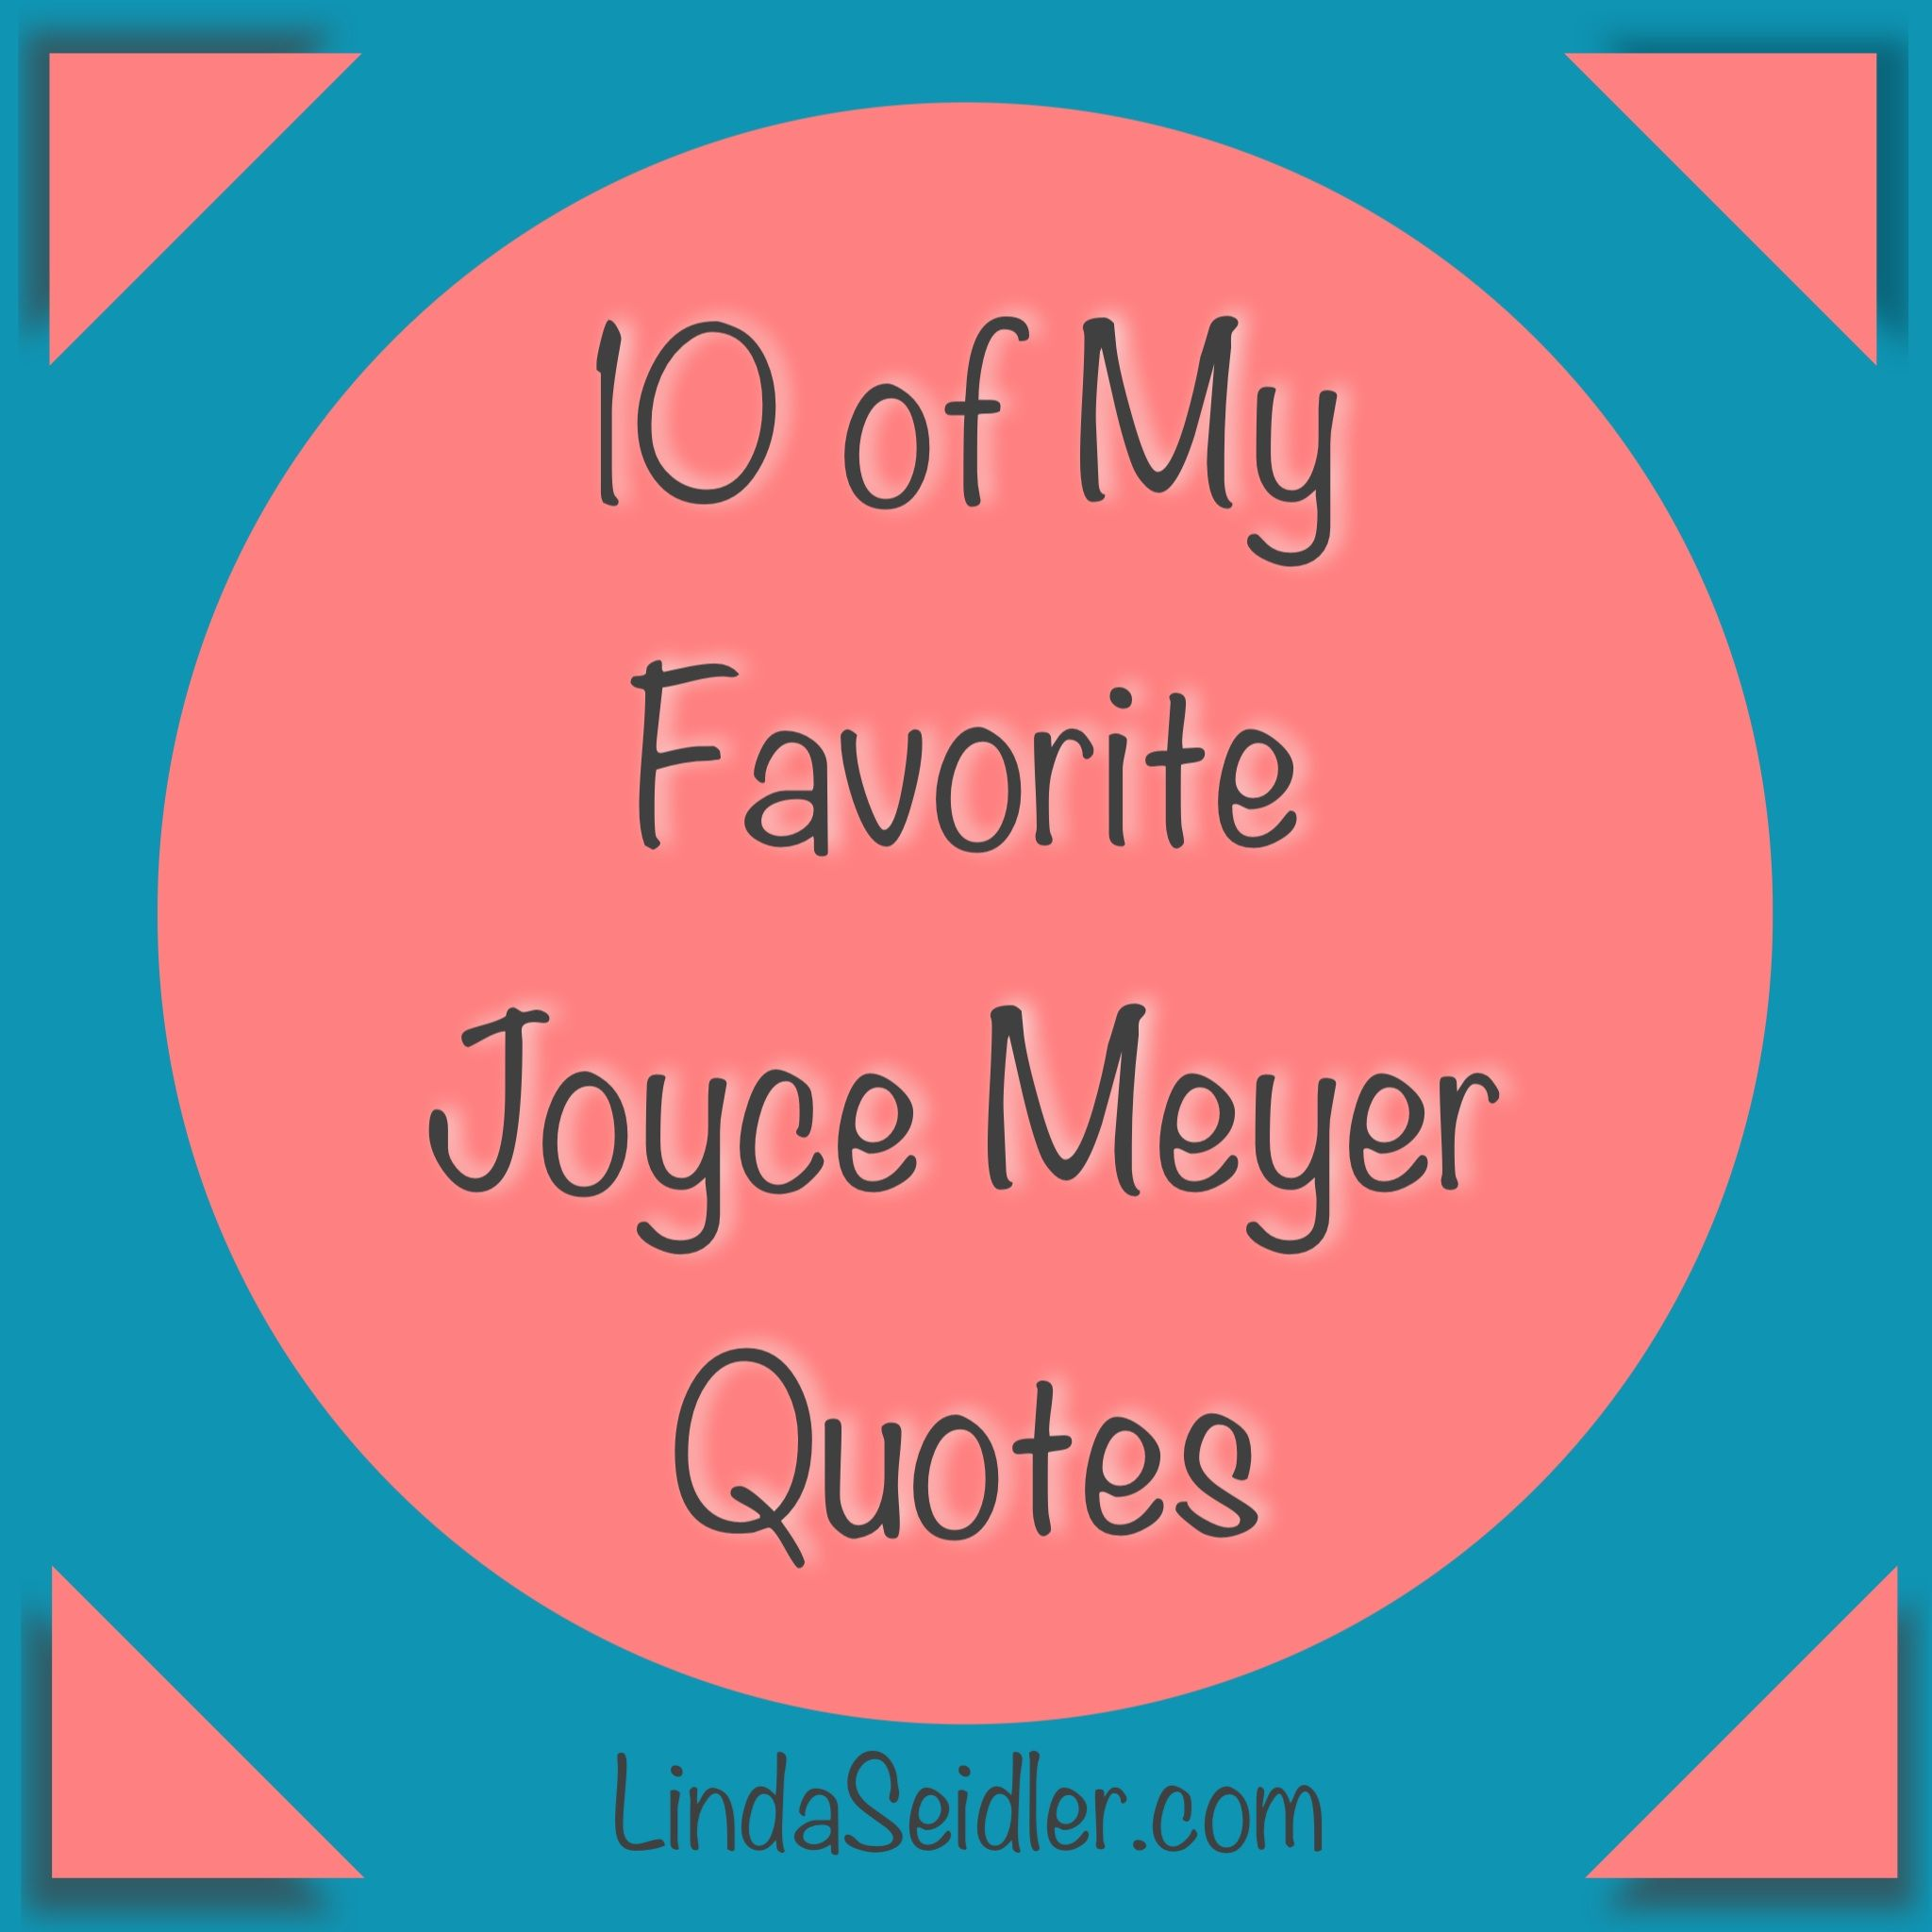 Favorite Positive Quotes Joyce Meyer Quotes Images  10 Of My Favorite Joyce Meyer Quotes